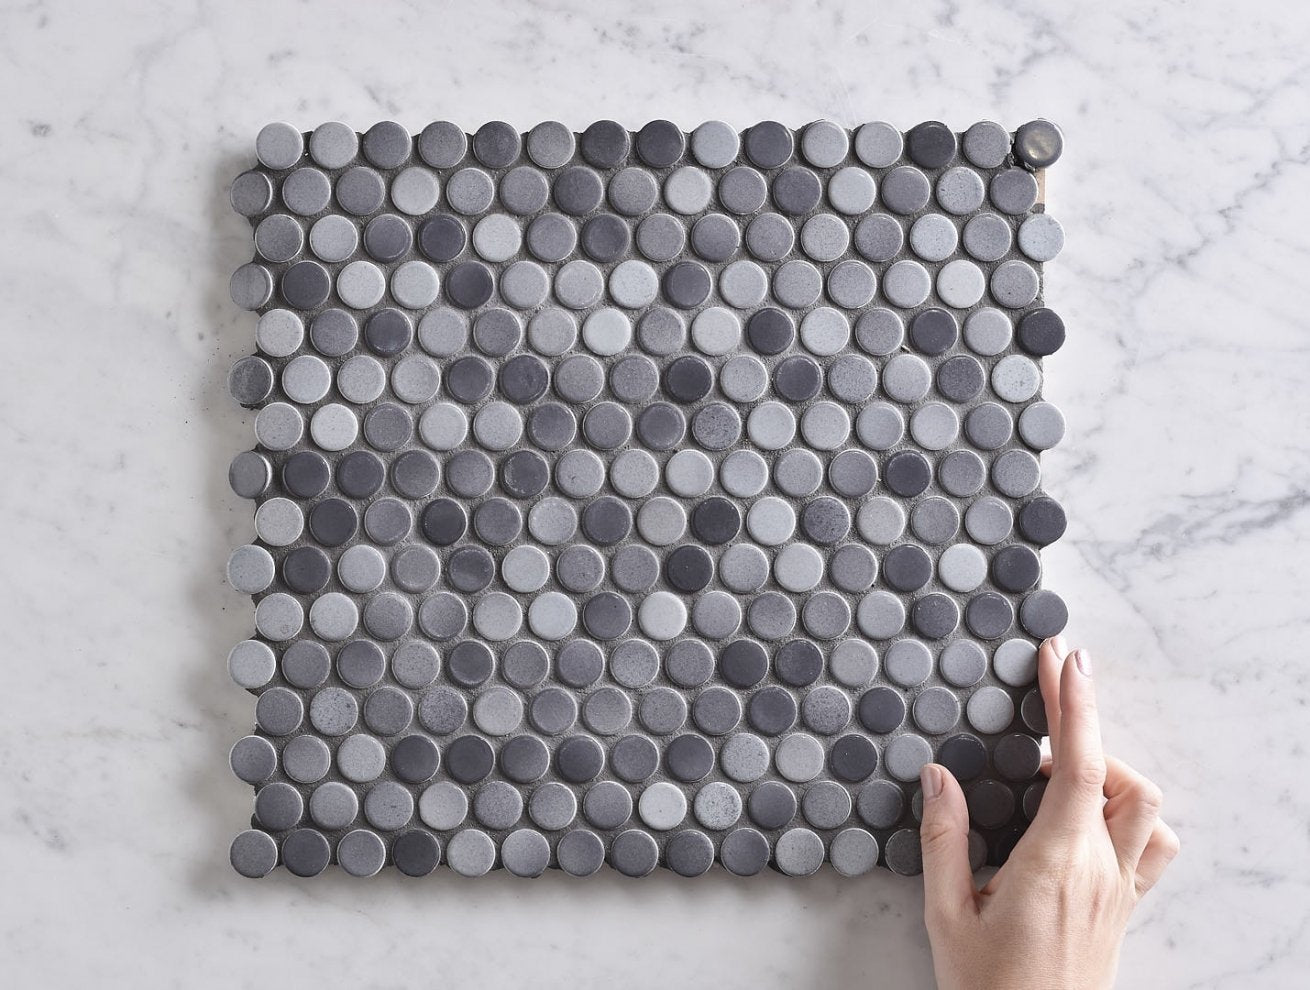 Broadwater Grey Mix Gloss Penny Round Mosaic Tile